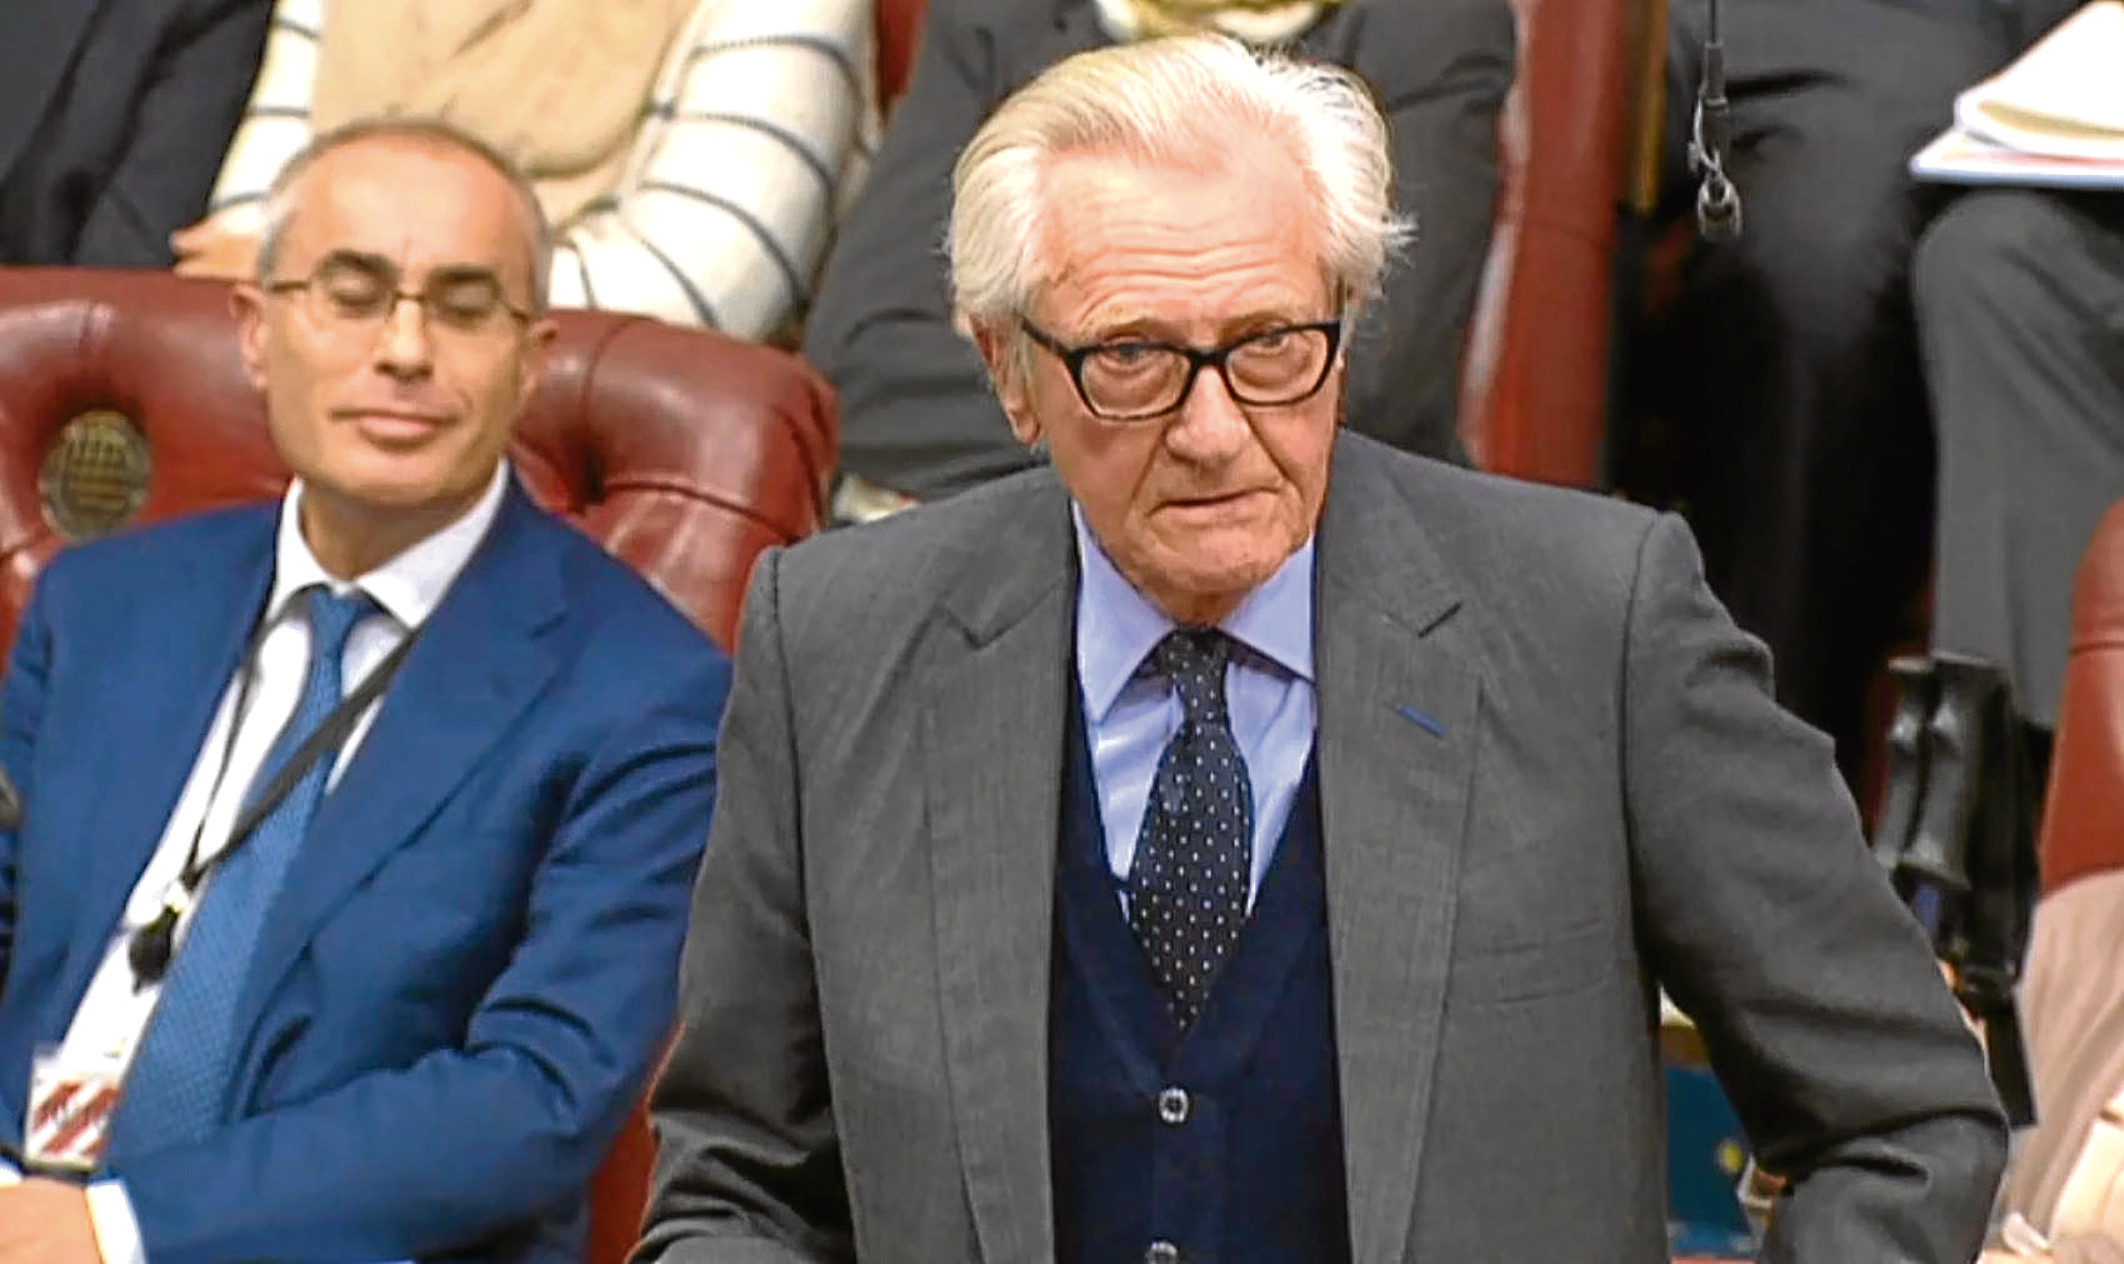 Lord Heseltine speaks in the House of Lords.